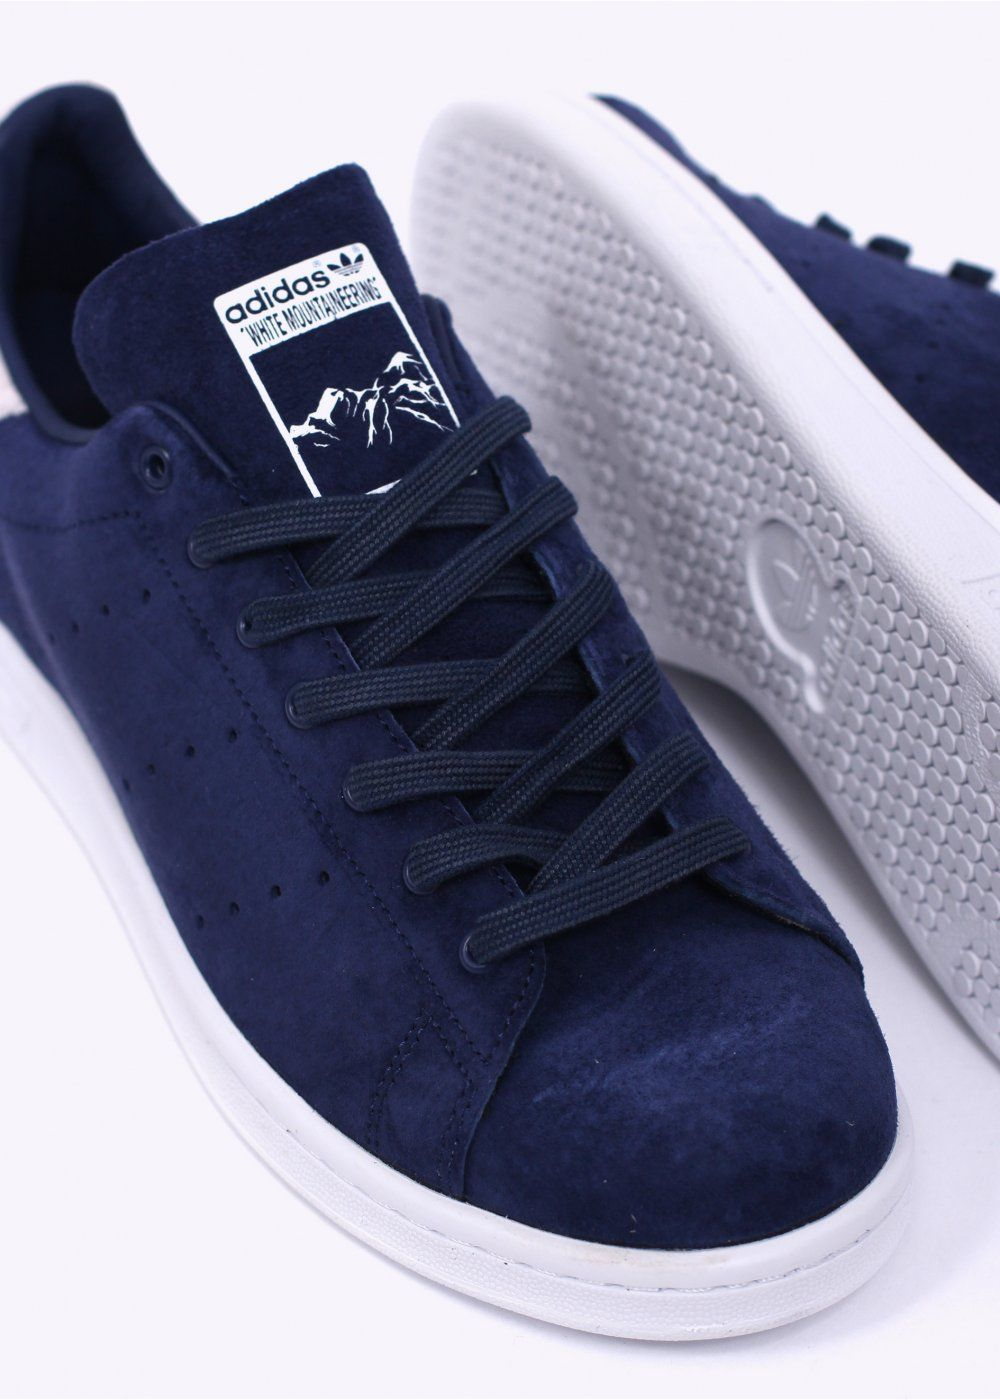 quality design 7741f 5208c Adidas Originals Footwear x White Mountaineering Stan Smith Trainers - Dark  Blue